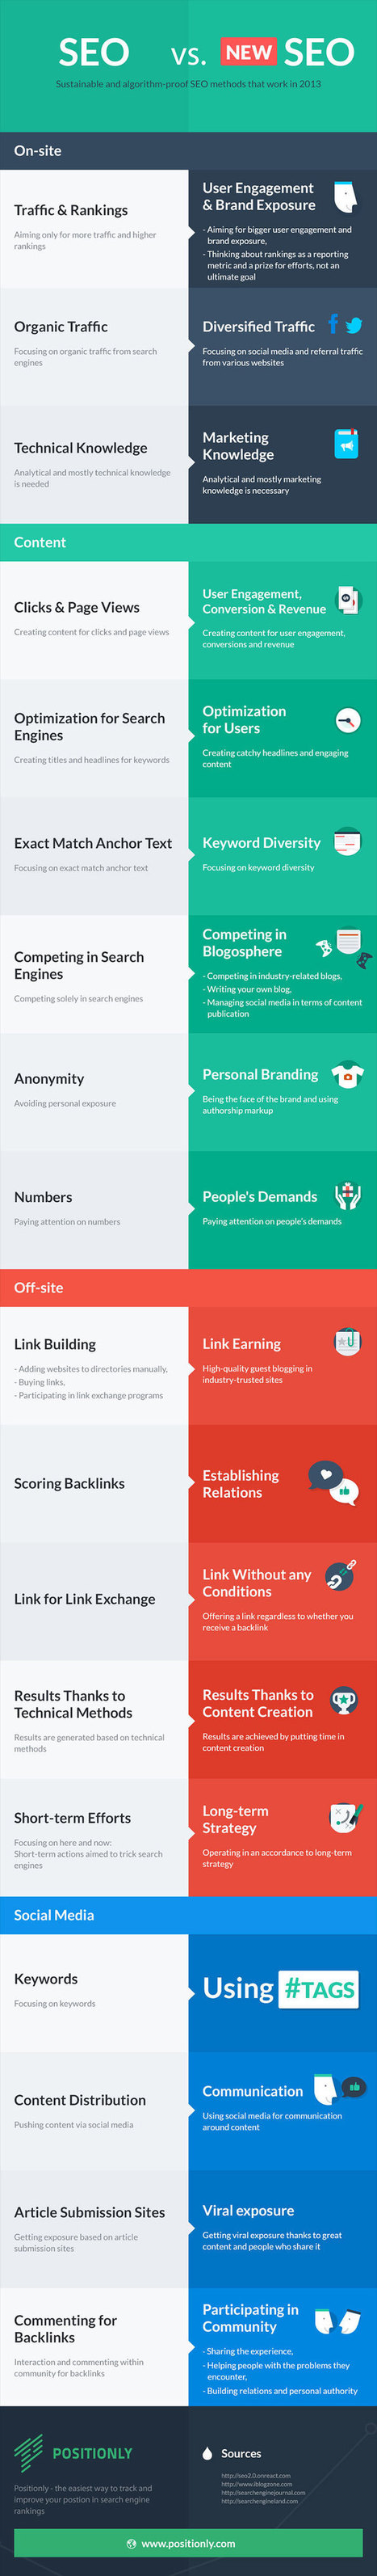 SEO Services You Need in 2014. Old SEO vs. New SEO - Vee Popat ... | Content marketing | Scoop.it